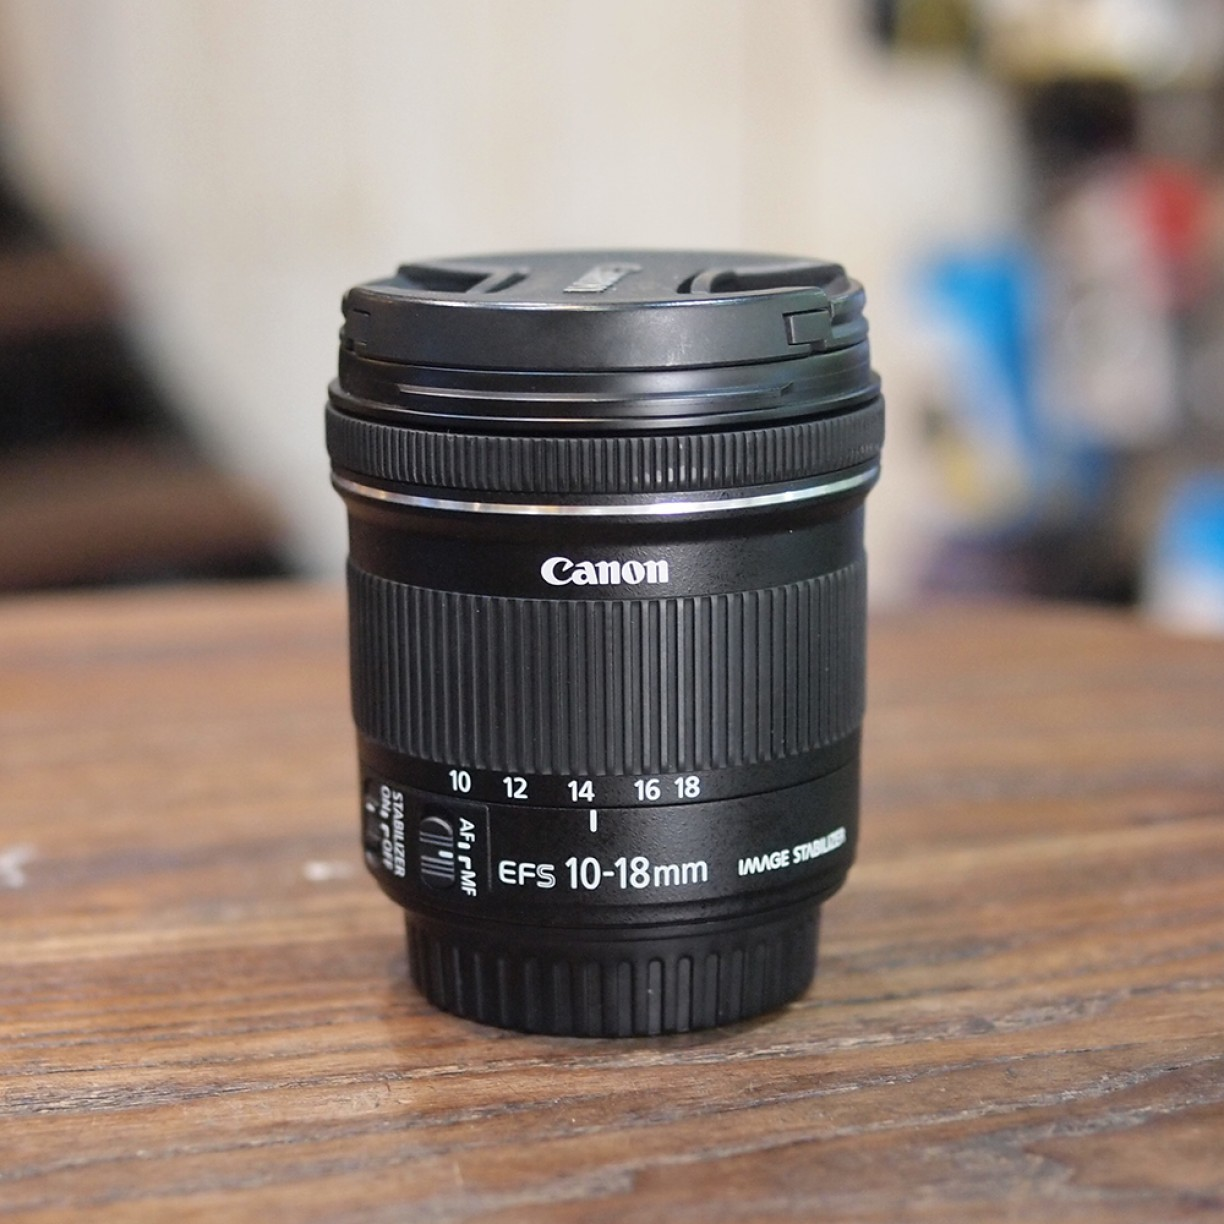 Canon EF-S 10-18mm f/4.5-5.6 IS STM - MINT CONDITION |1711|